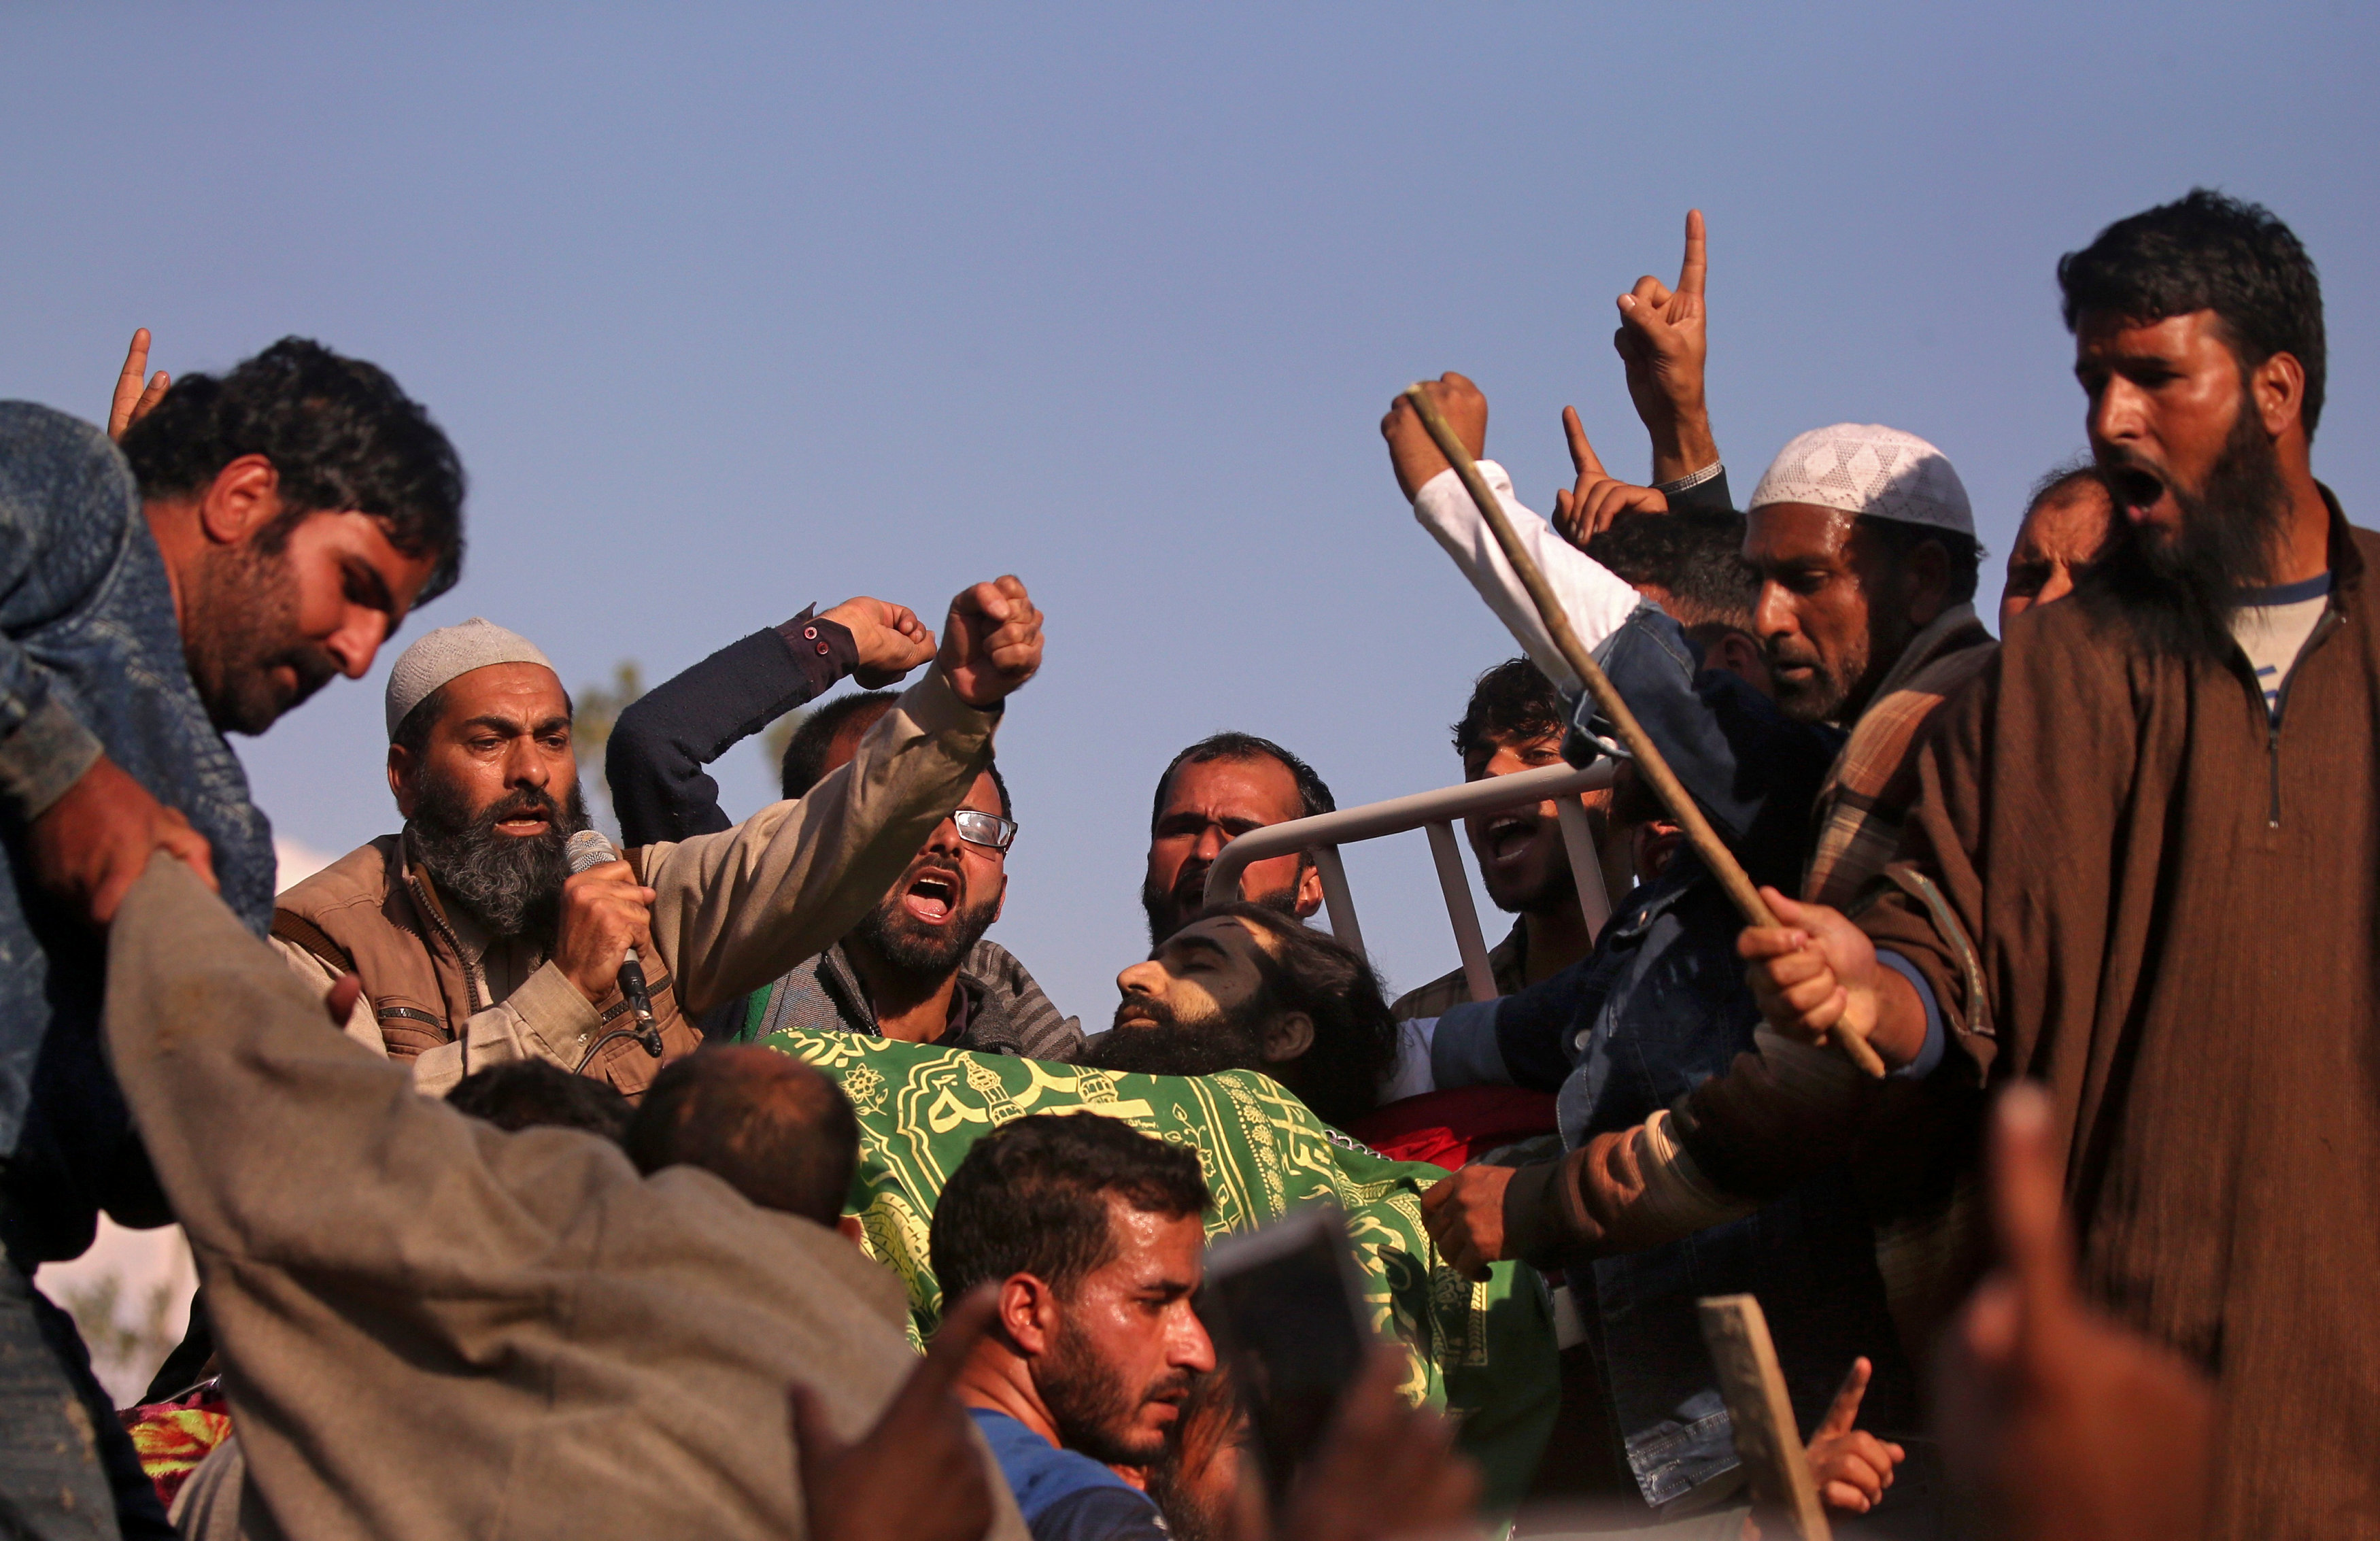 People shout slogans around the body of Sabzar Ahmad Sofi, a suspected militant, who was killed in a gun battle with the security forces on the outskirts of Srinagar, during his funeral procession in south Kashmir's Sangam town on Wednesday. REUTERS